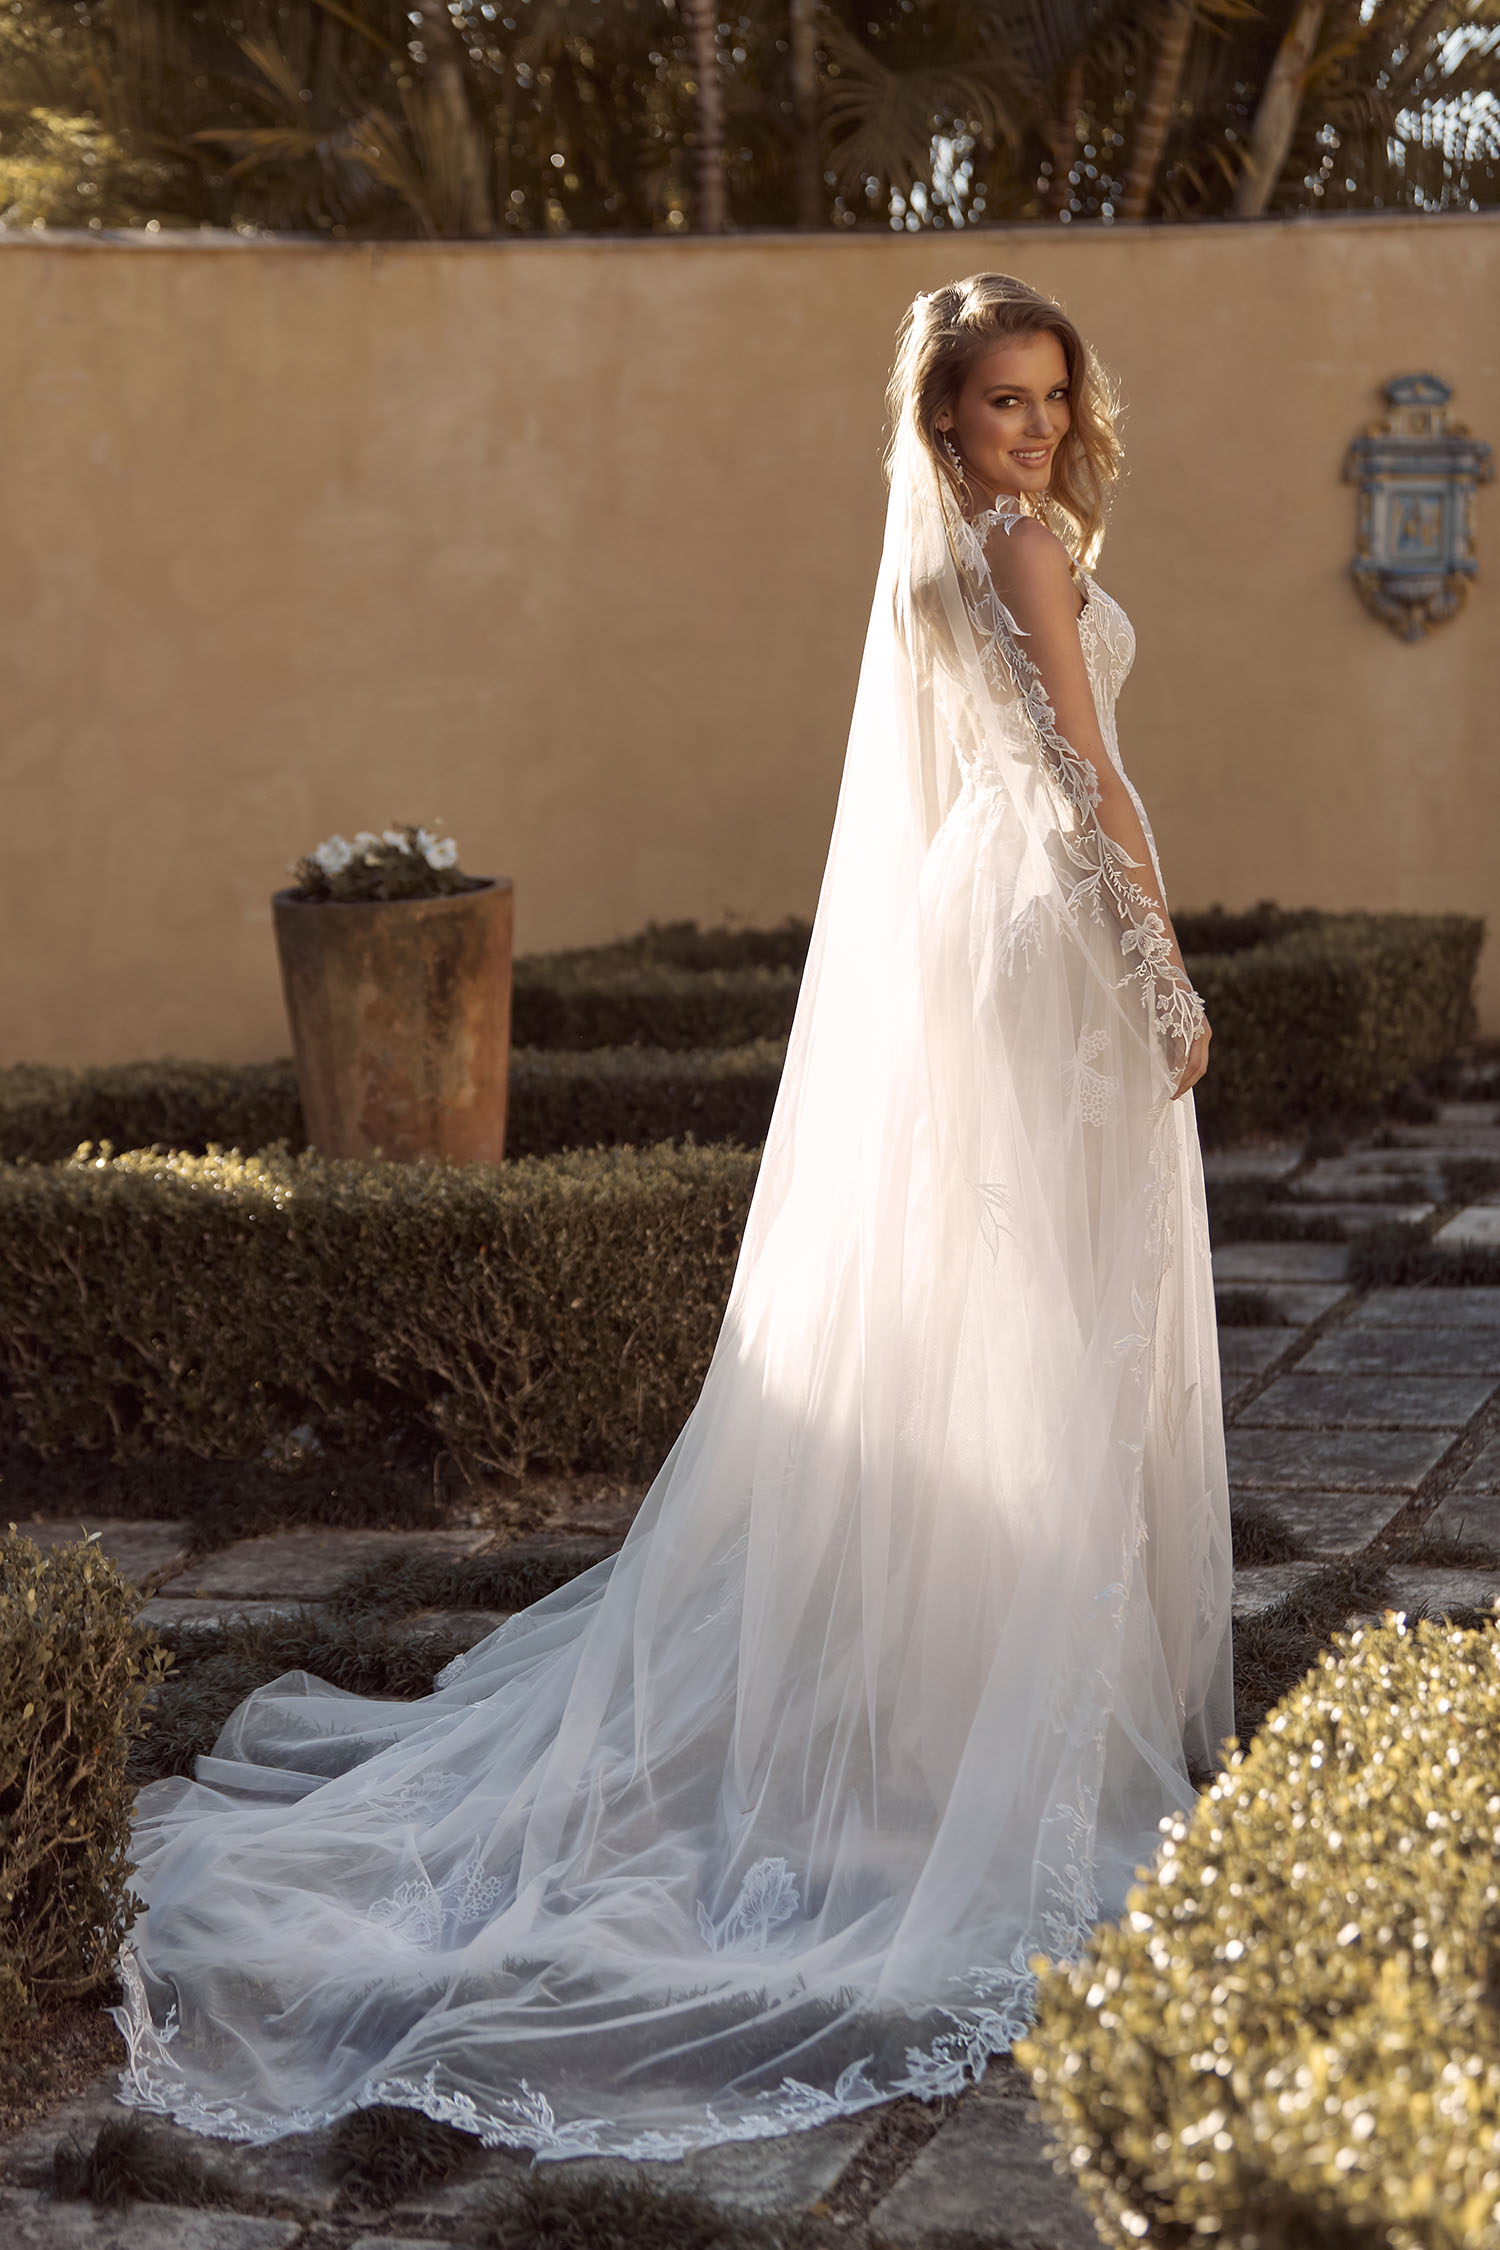 BIRDIE VEIL V935 MATCHING CATHEDRAL LENGTH VEIL WITH FLORAL LACE PAIRED WITH GOWN ML19535 VEIL MADI LANE BRIDAL1